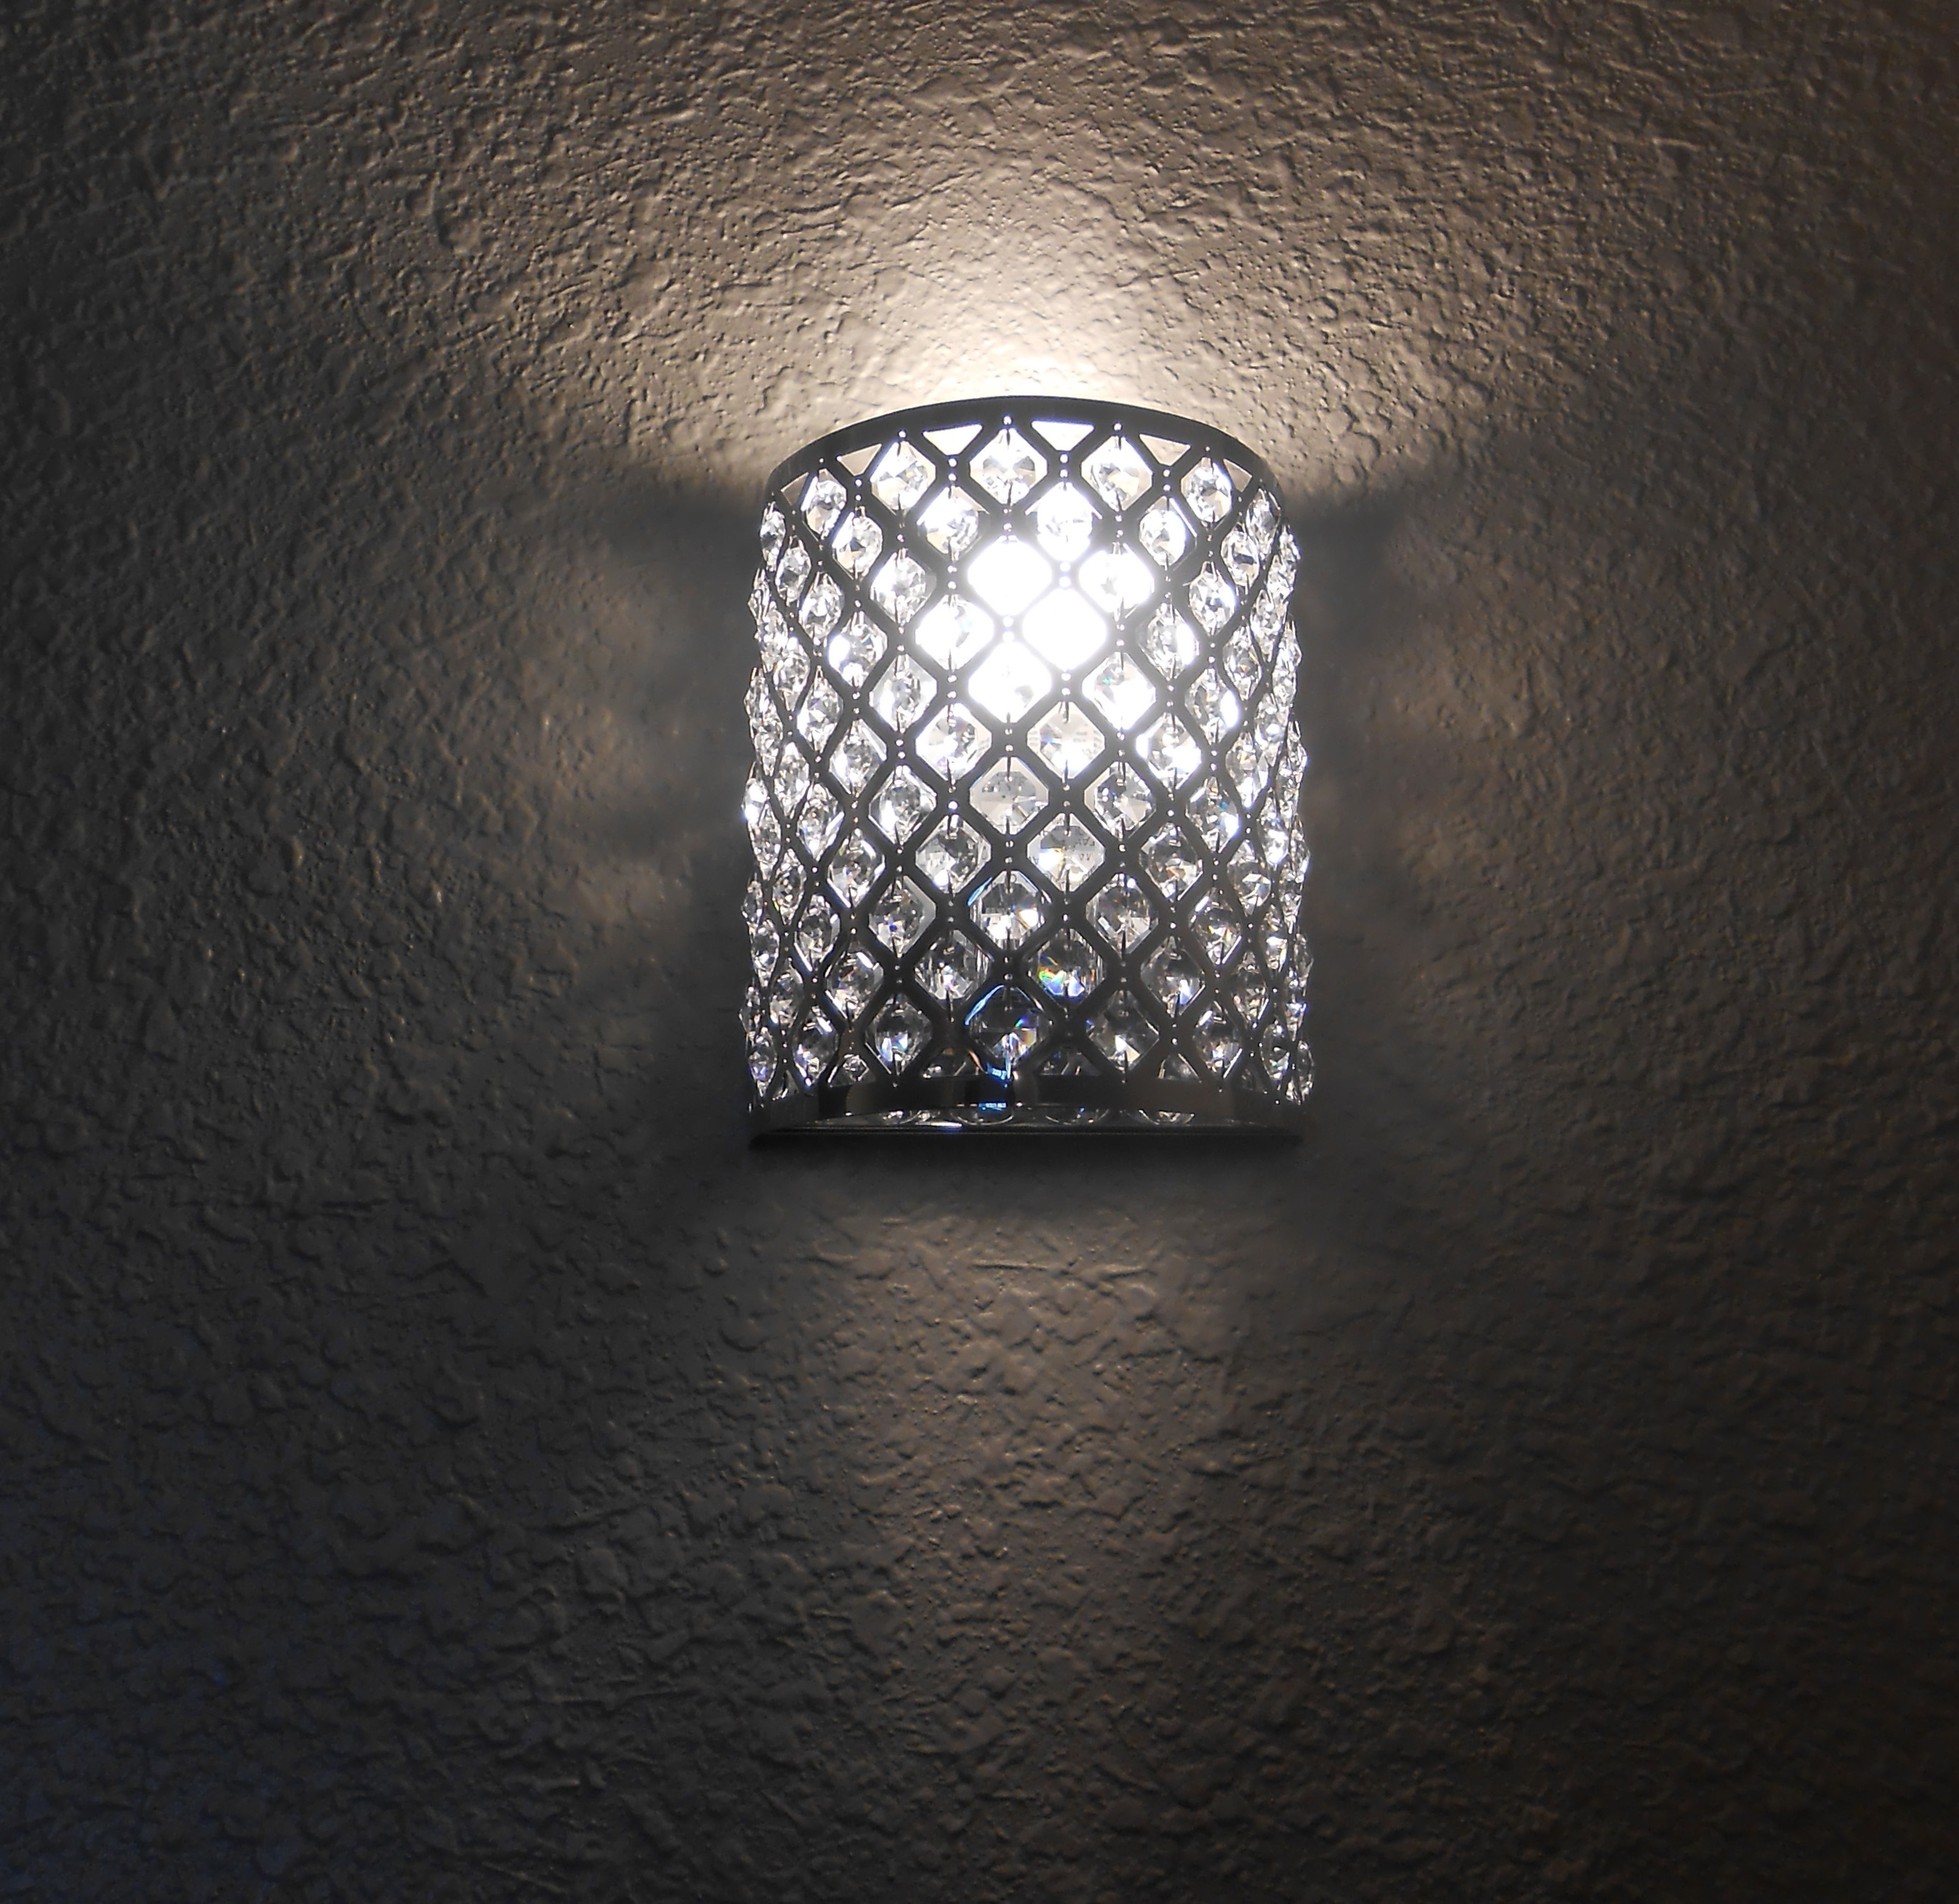 Battery Powered Outdoor Wall Lights • Outdoor Lighting In Well Known Battery Operated Outdoor Wall Lights (View 3 of 20)